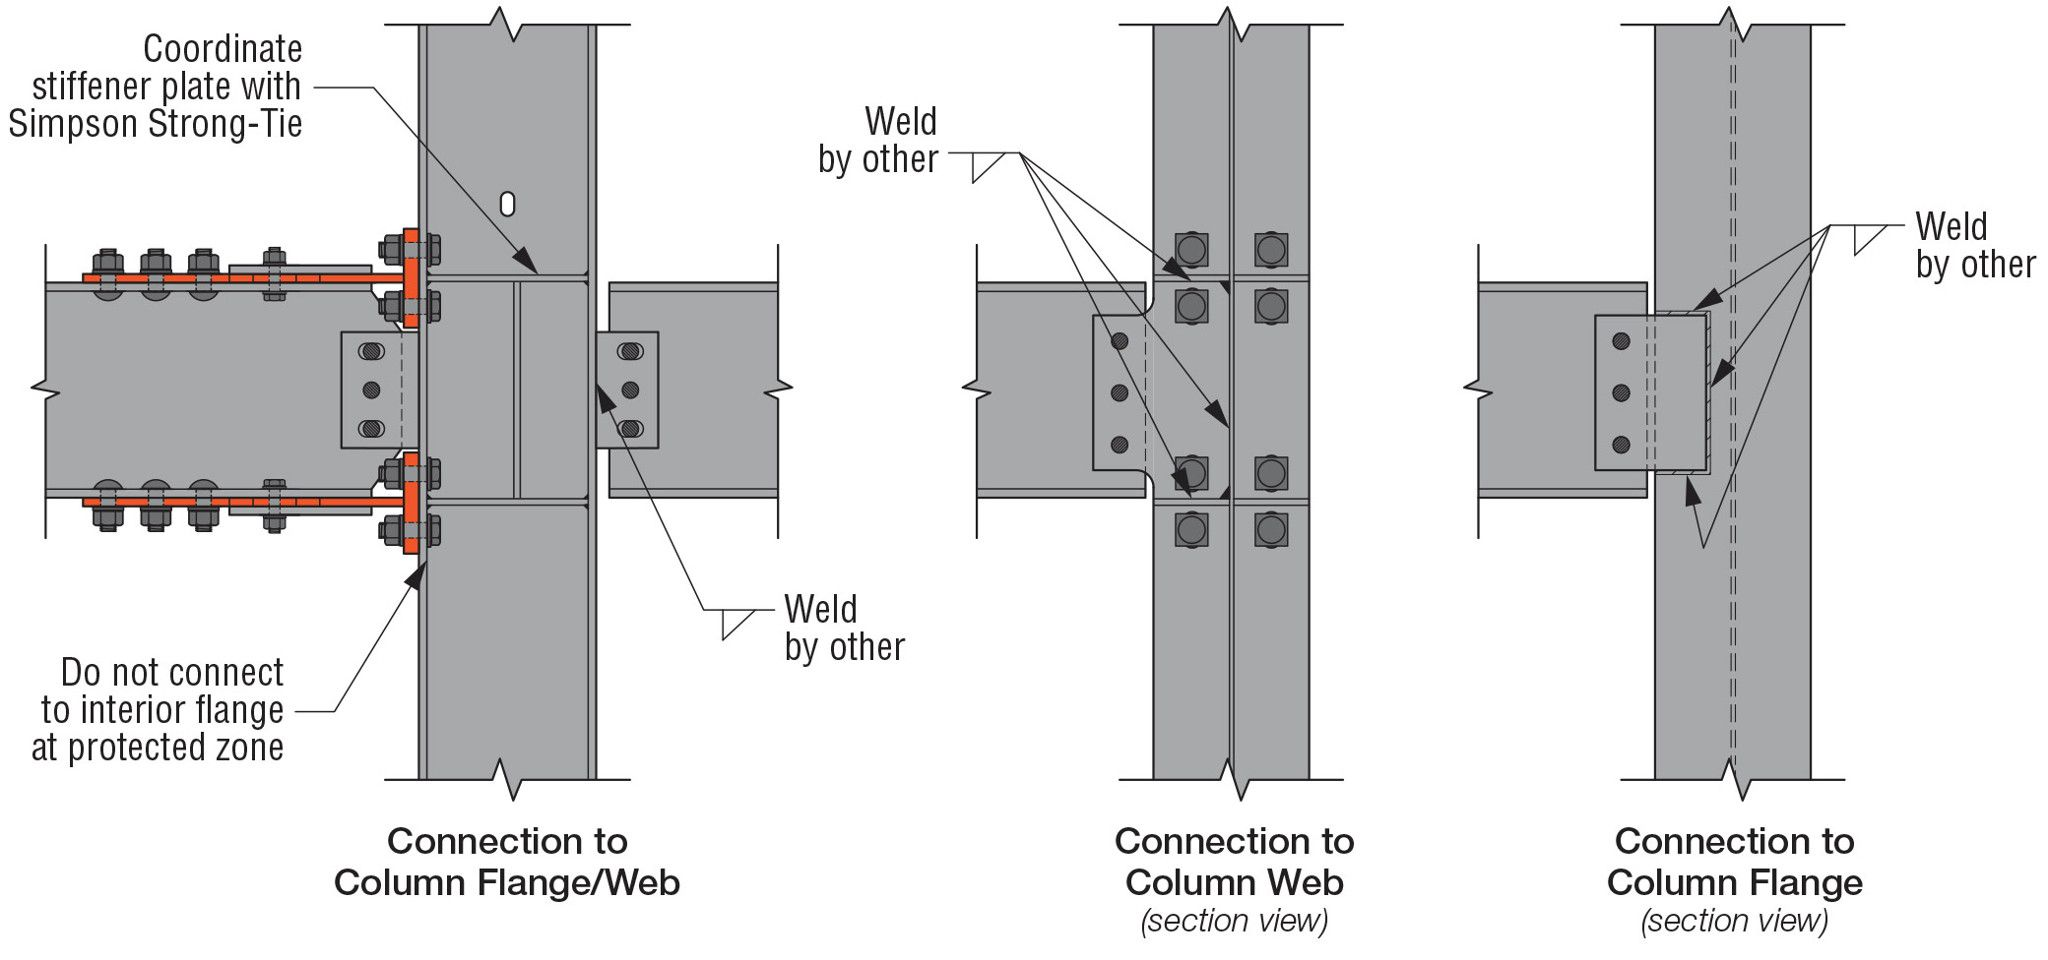 Connection to Column Flange/Web